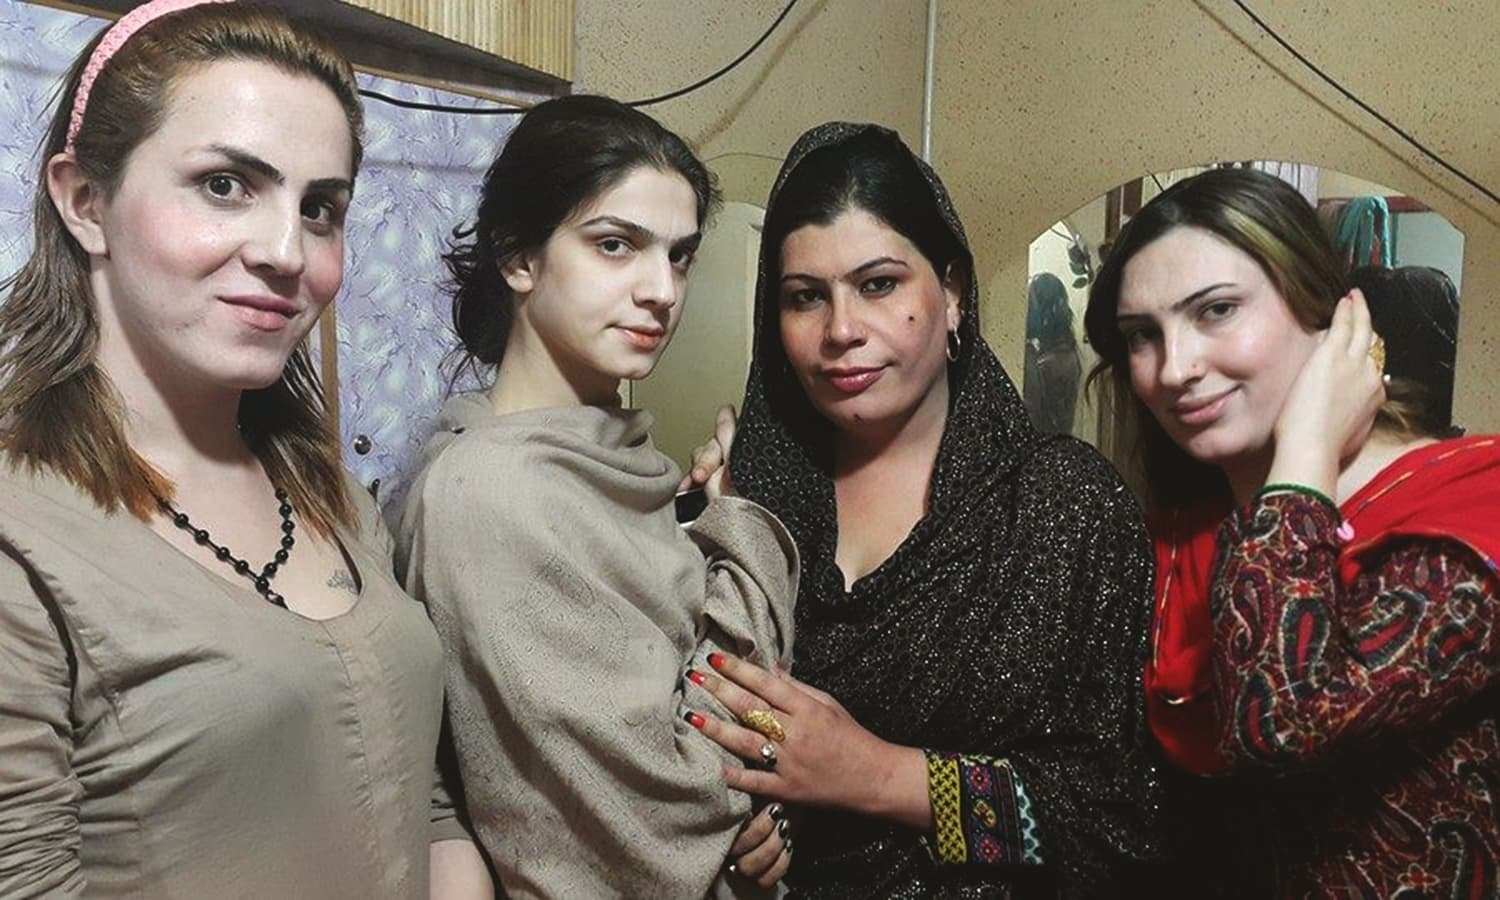 The government's social safety net 'Ehsaas' on Monday approved to include all transgender people in the country in its financial assistance under the Ehsaas Kafalat programme. — File